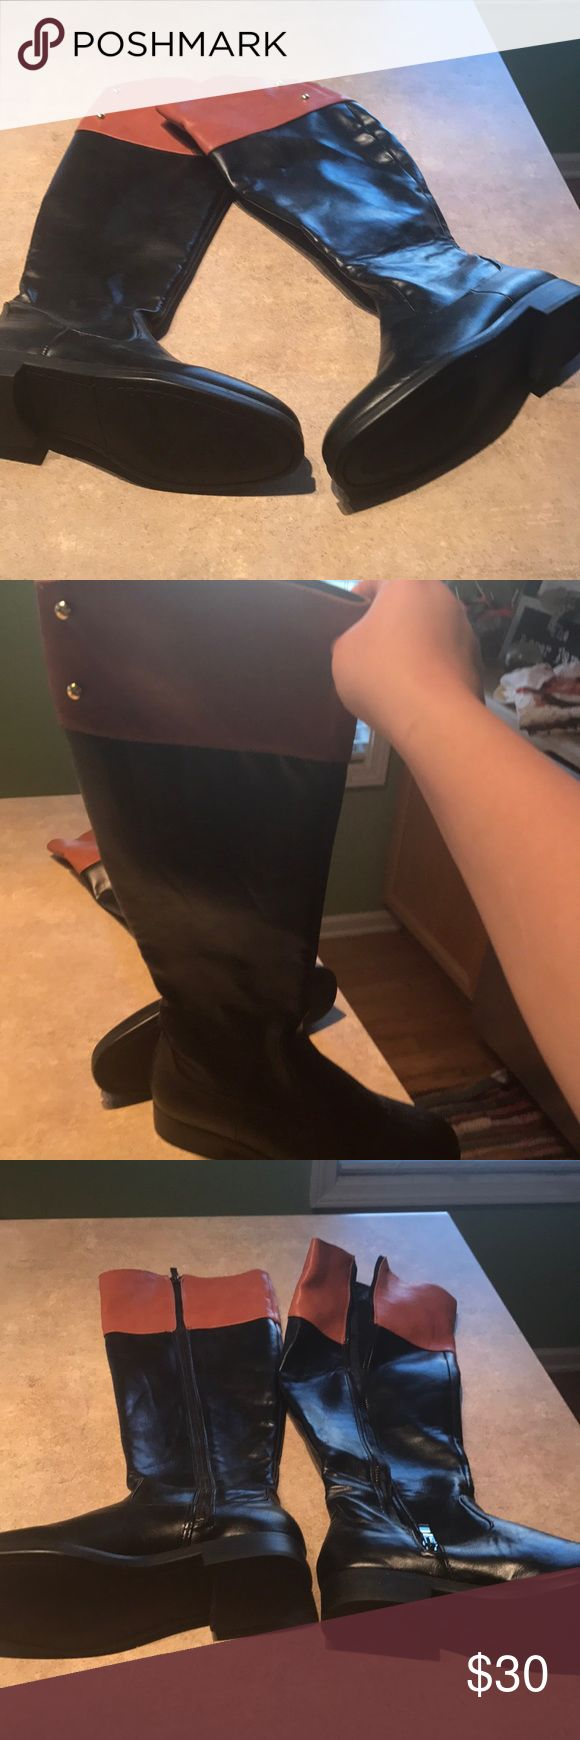 Black and Tan boots, never worn! These Black and Tan boots are adorable and never worn!  They are perfect for any equestrian or lover of boots in general!  They zip up and are super adorable over leggings or skinny jeans. alexa Shoes Heeled Boots